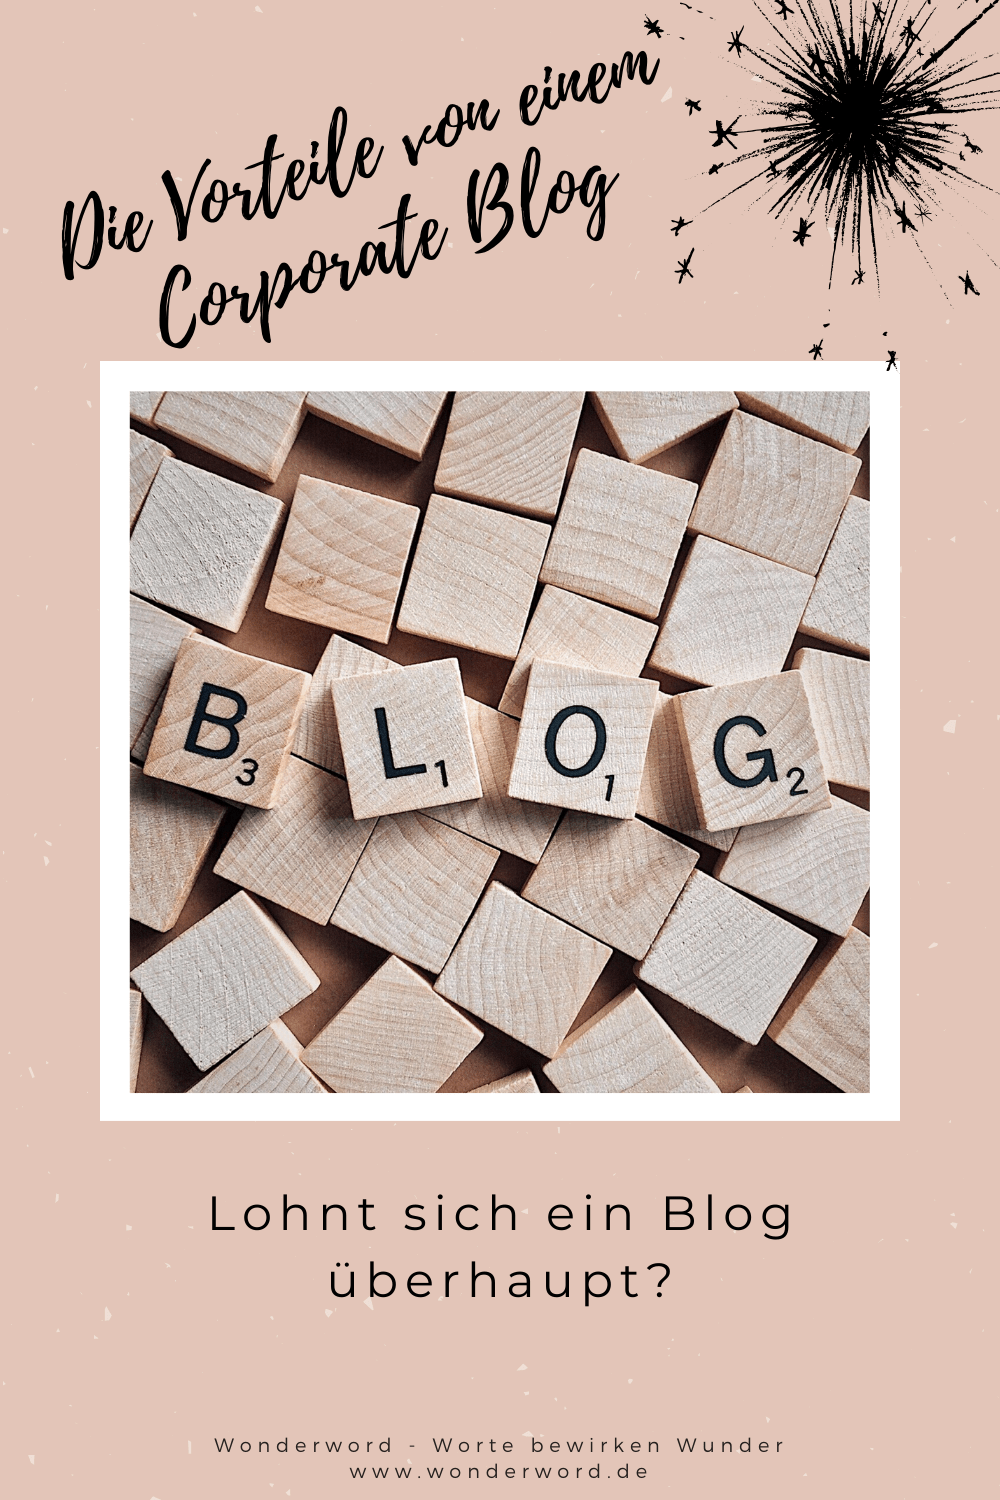 Vorteile Corporate Blog